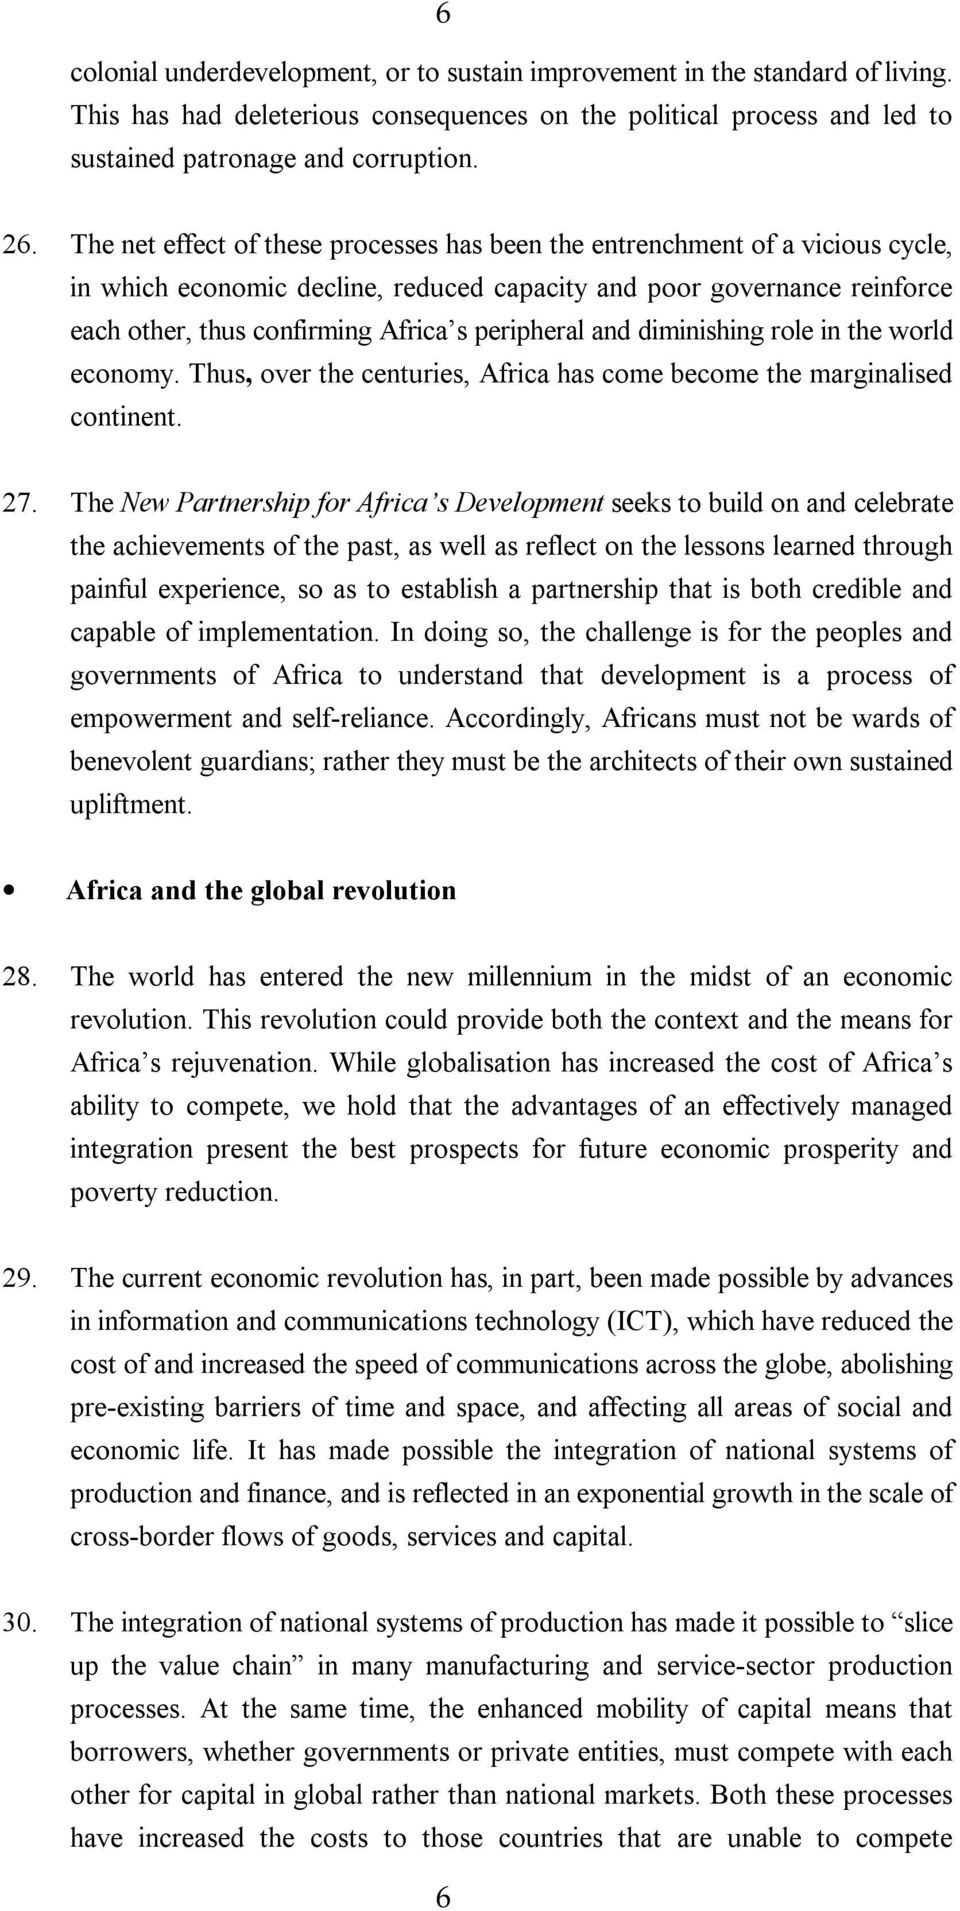 peripheral and diminishing role in the world economy. Thus, over the centuries, Africa has come become the marginalised continent. 27.